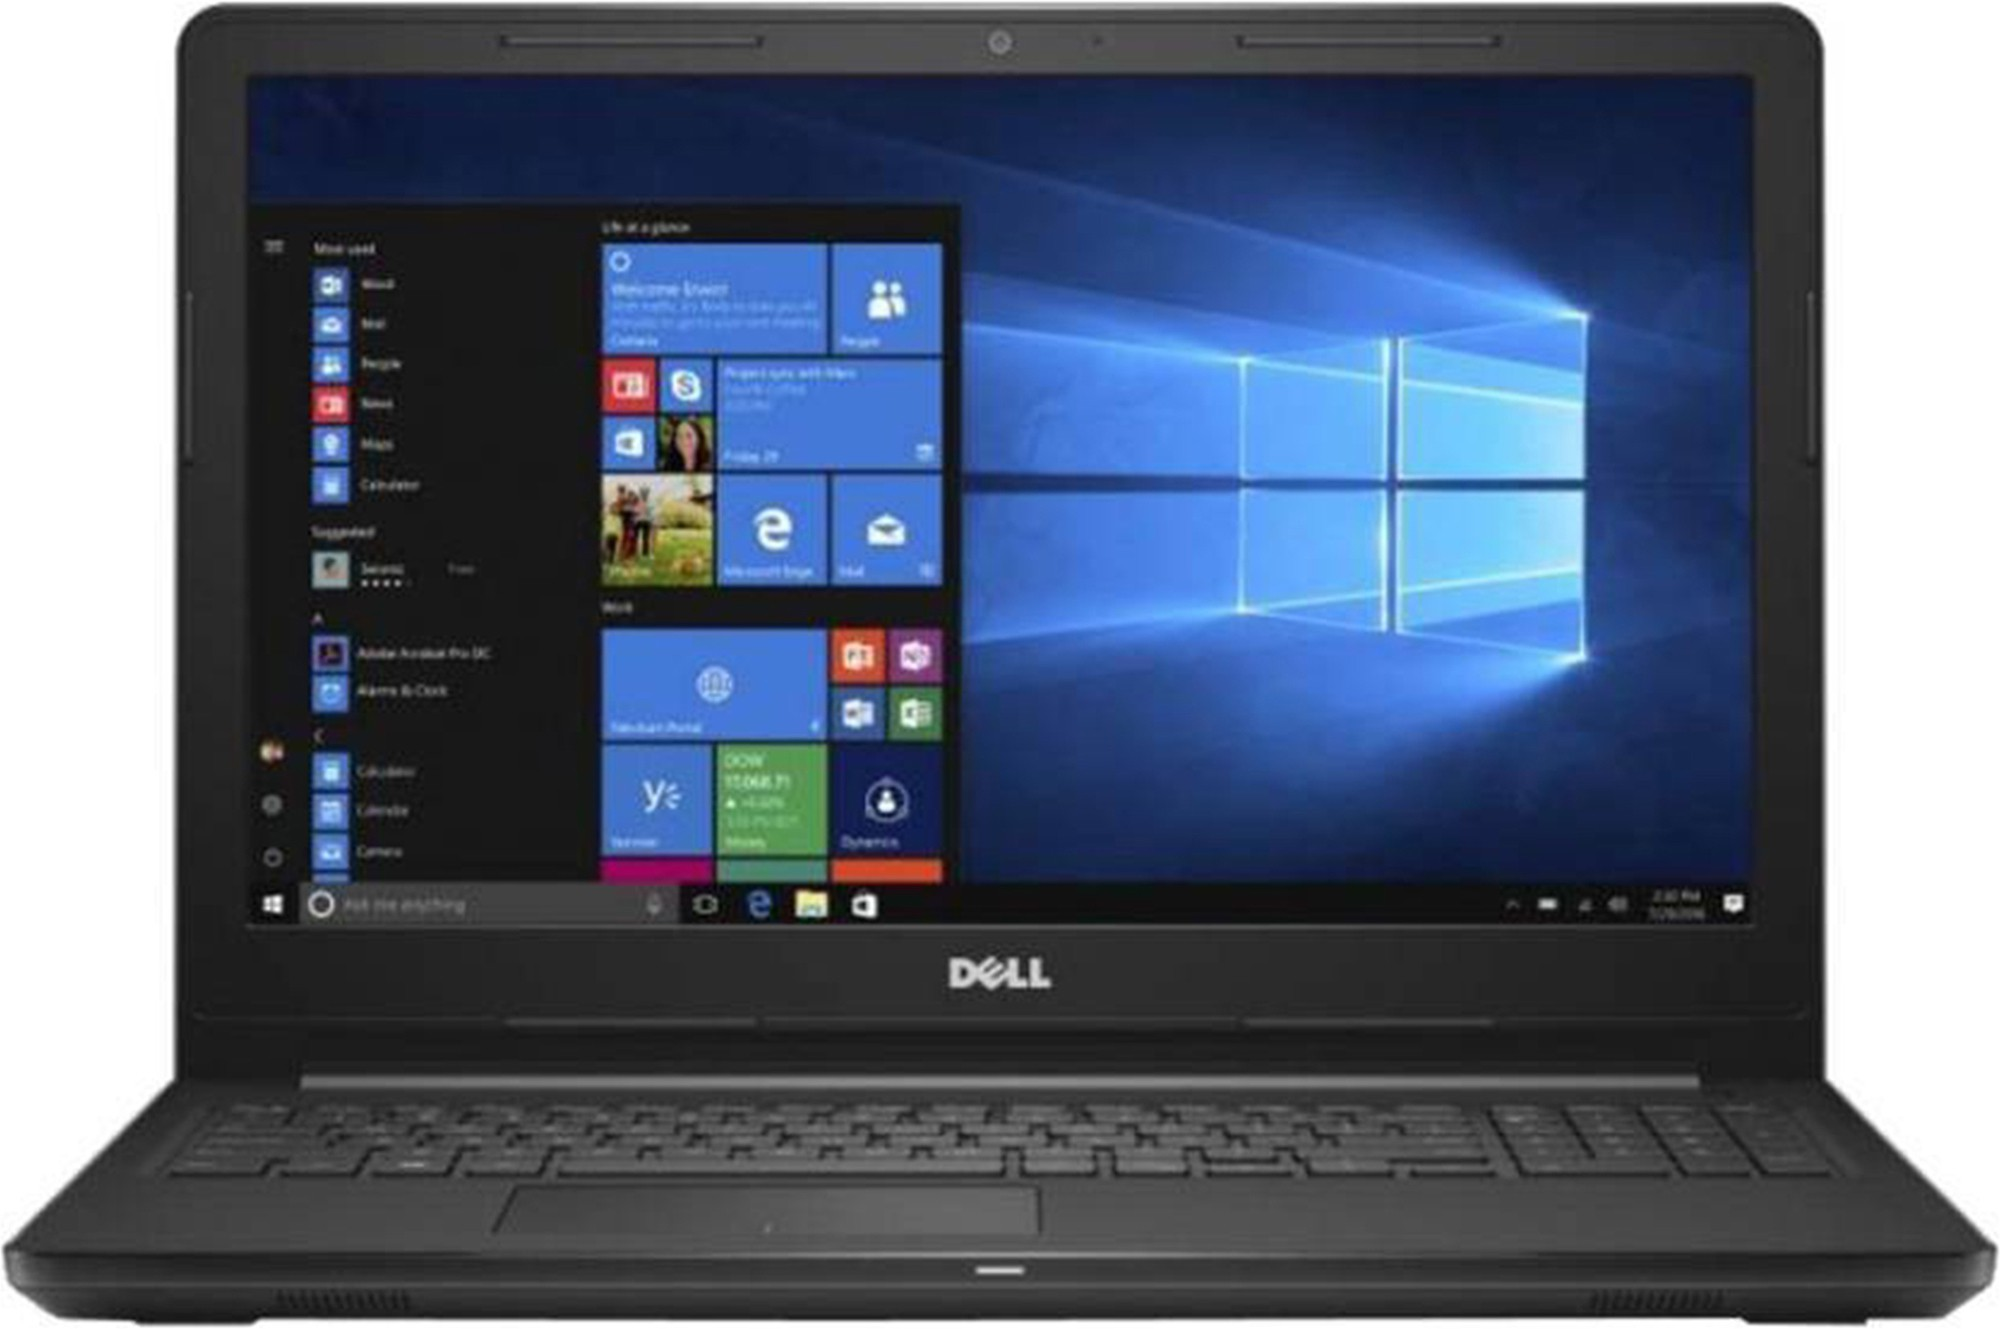 dell inspiron 15 3000 i3 review